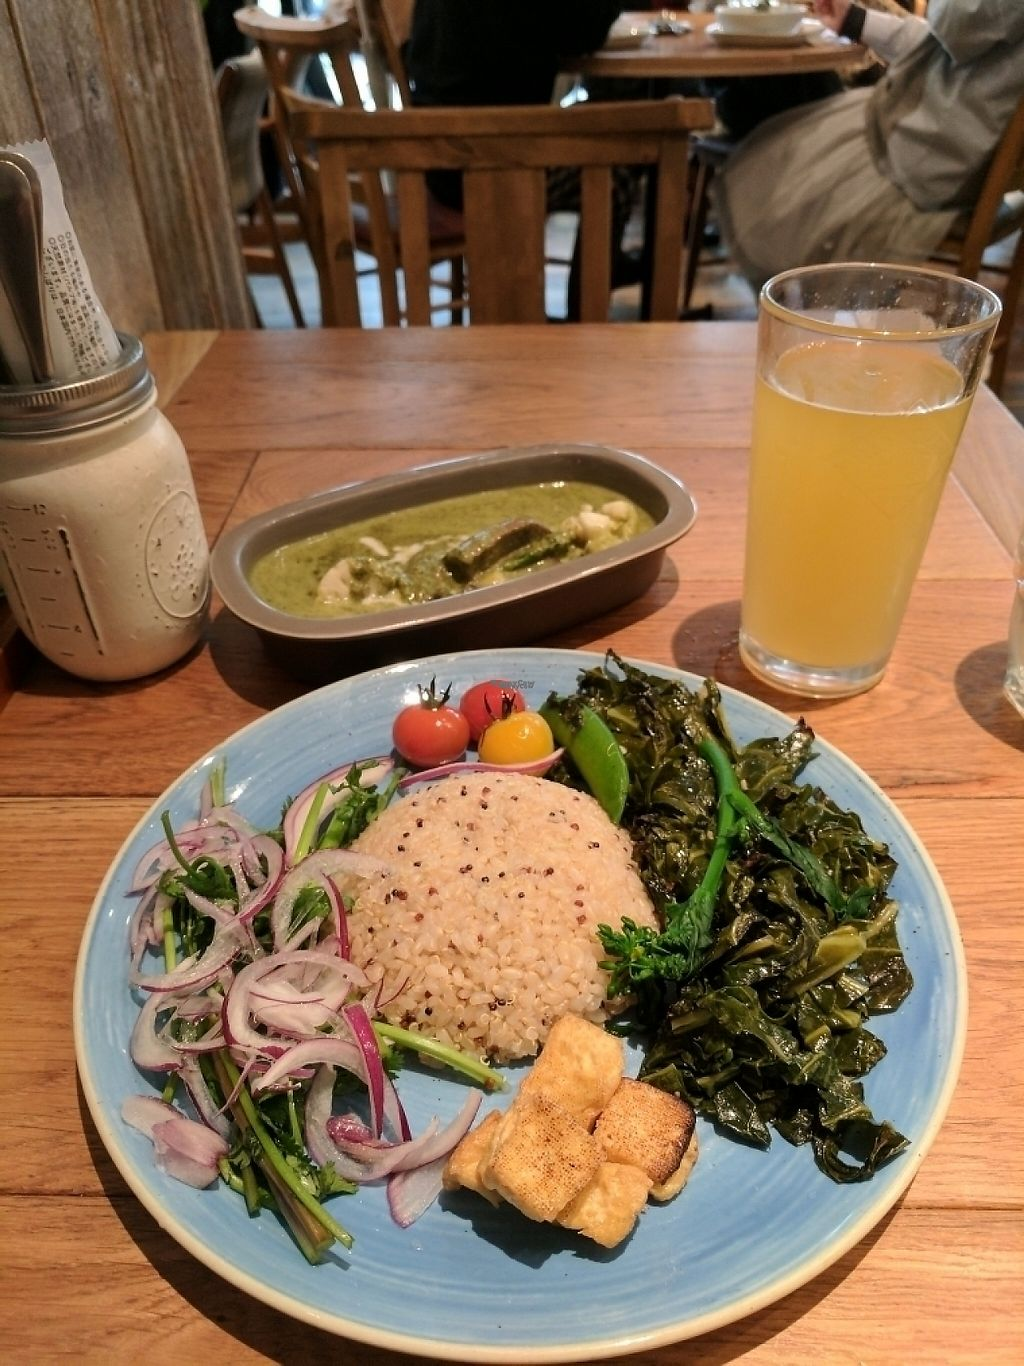 """Photo of Mr. Farmer - Roppongi  by <a href=""""/members/profile/ScottMorley"""">ScottMorley</a> <br/>gluten free vegan curry <br/> March 21, 2017  - <a href='/contact/abuse/image/76848/239063'>Report</a>"""